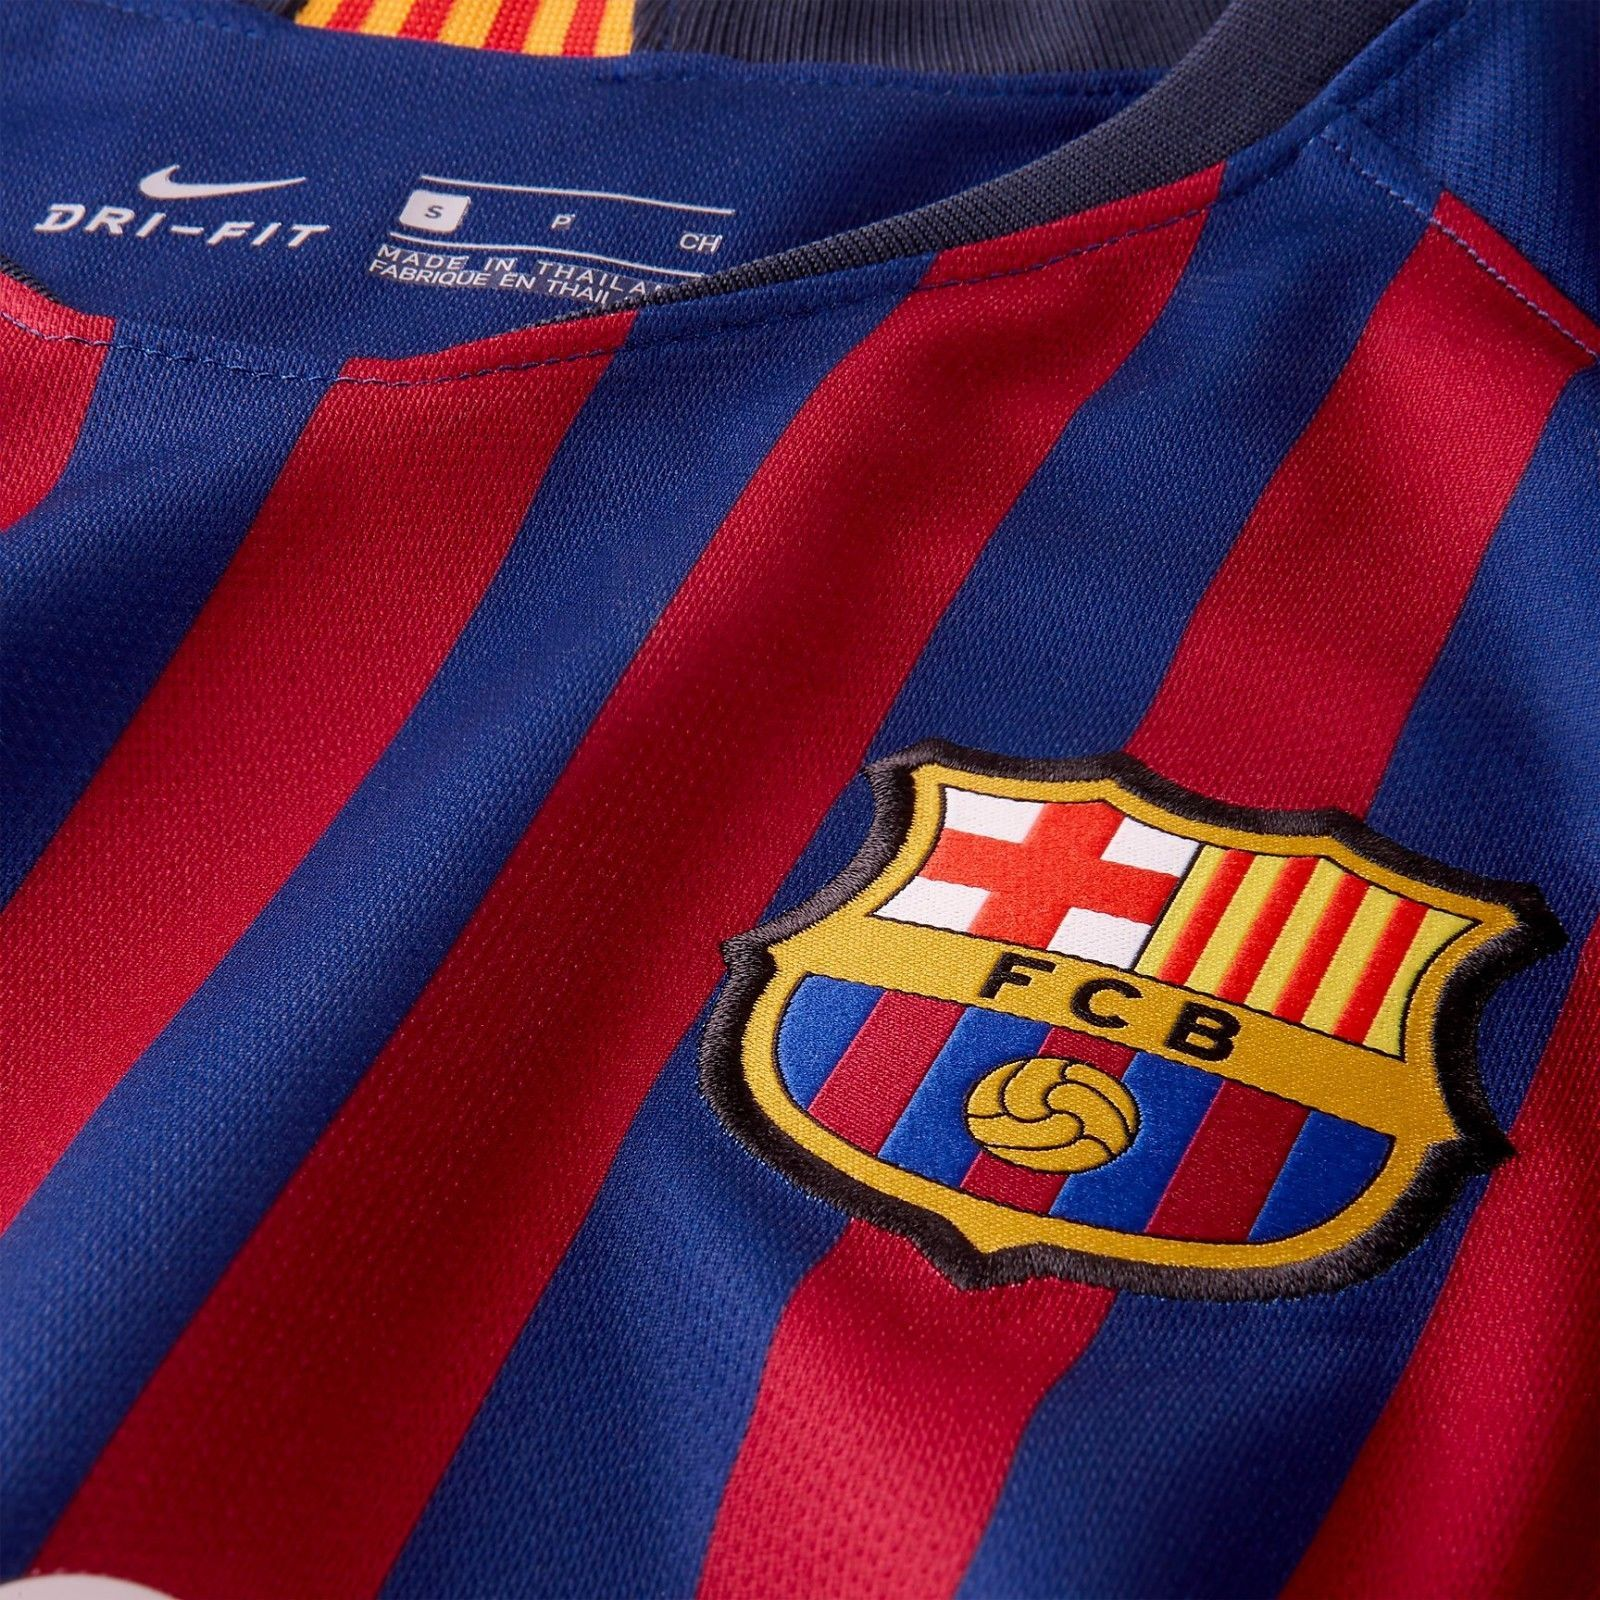 the best attitude 3fb1d 18f48 MESSI FC BARCELONA WOMEN'S HOME JERSEY 2018/19. sold by Mexibro